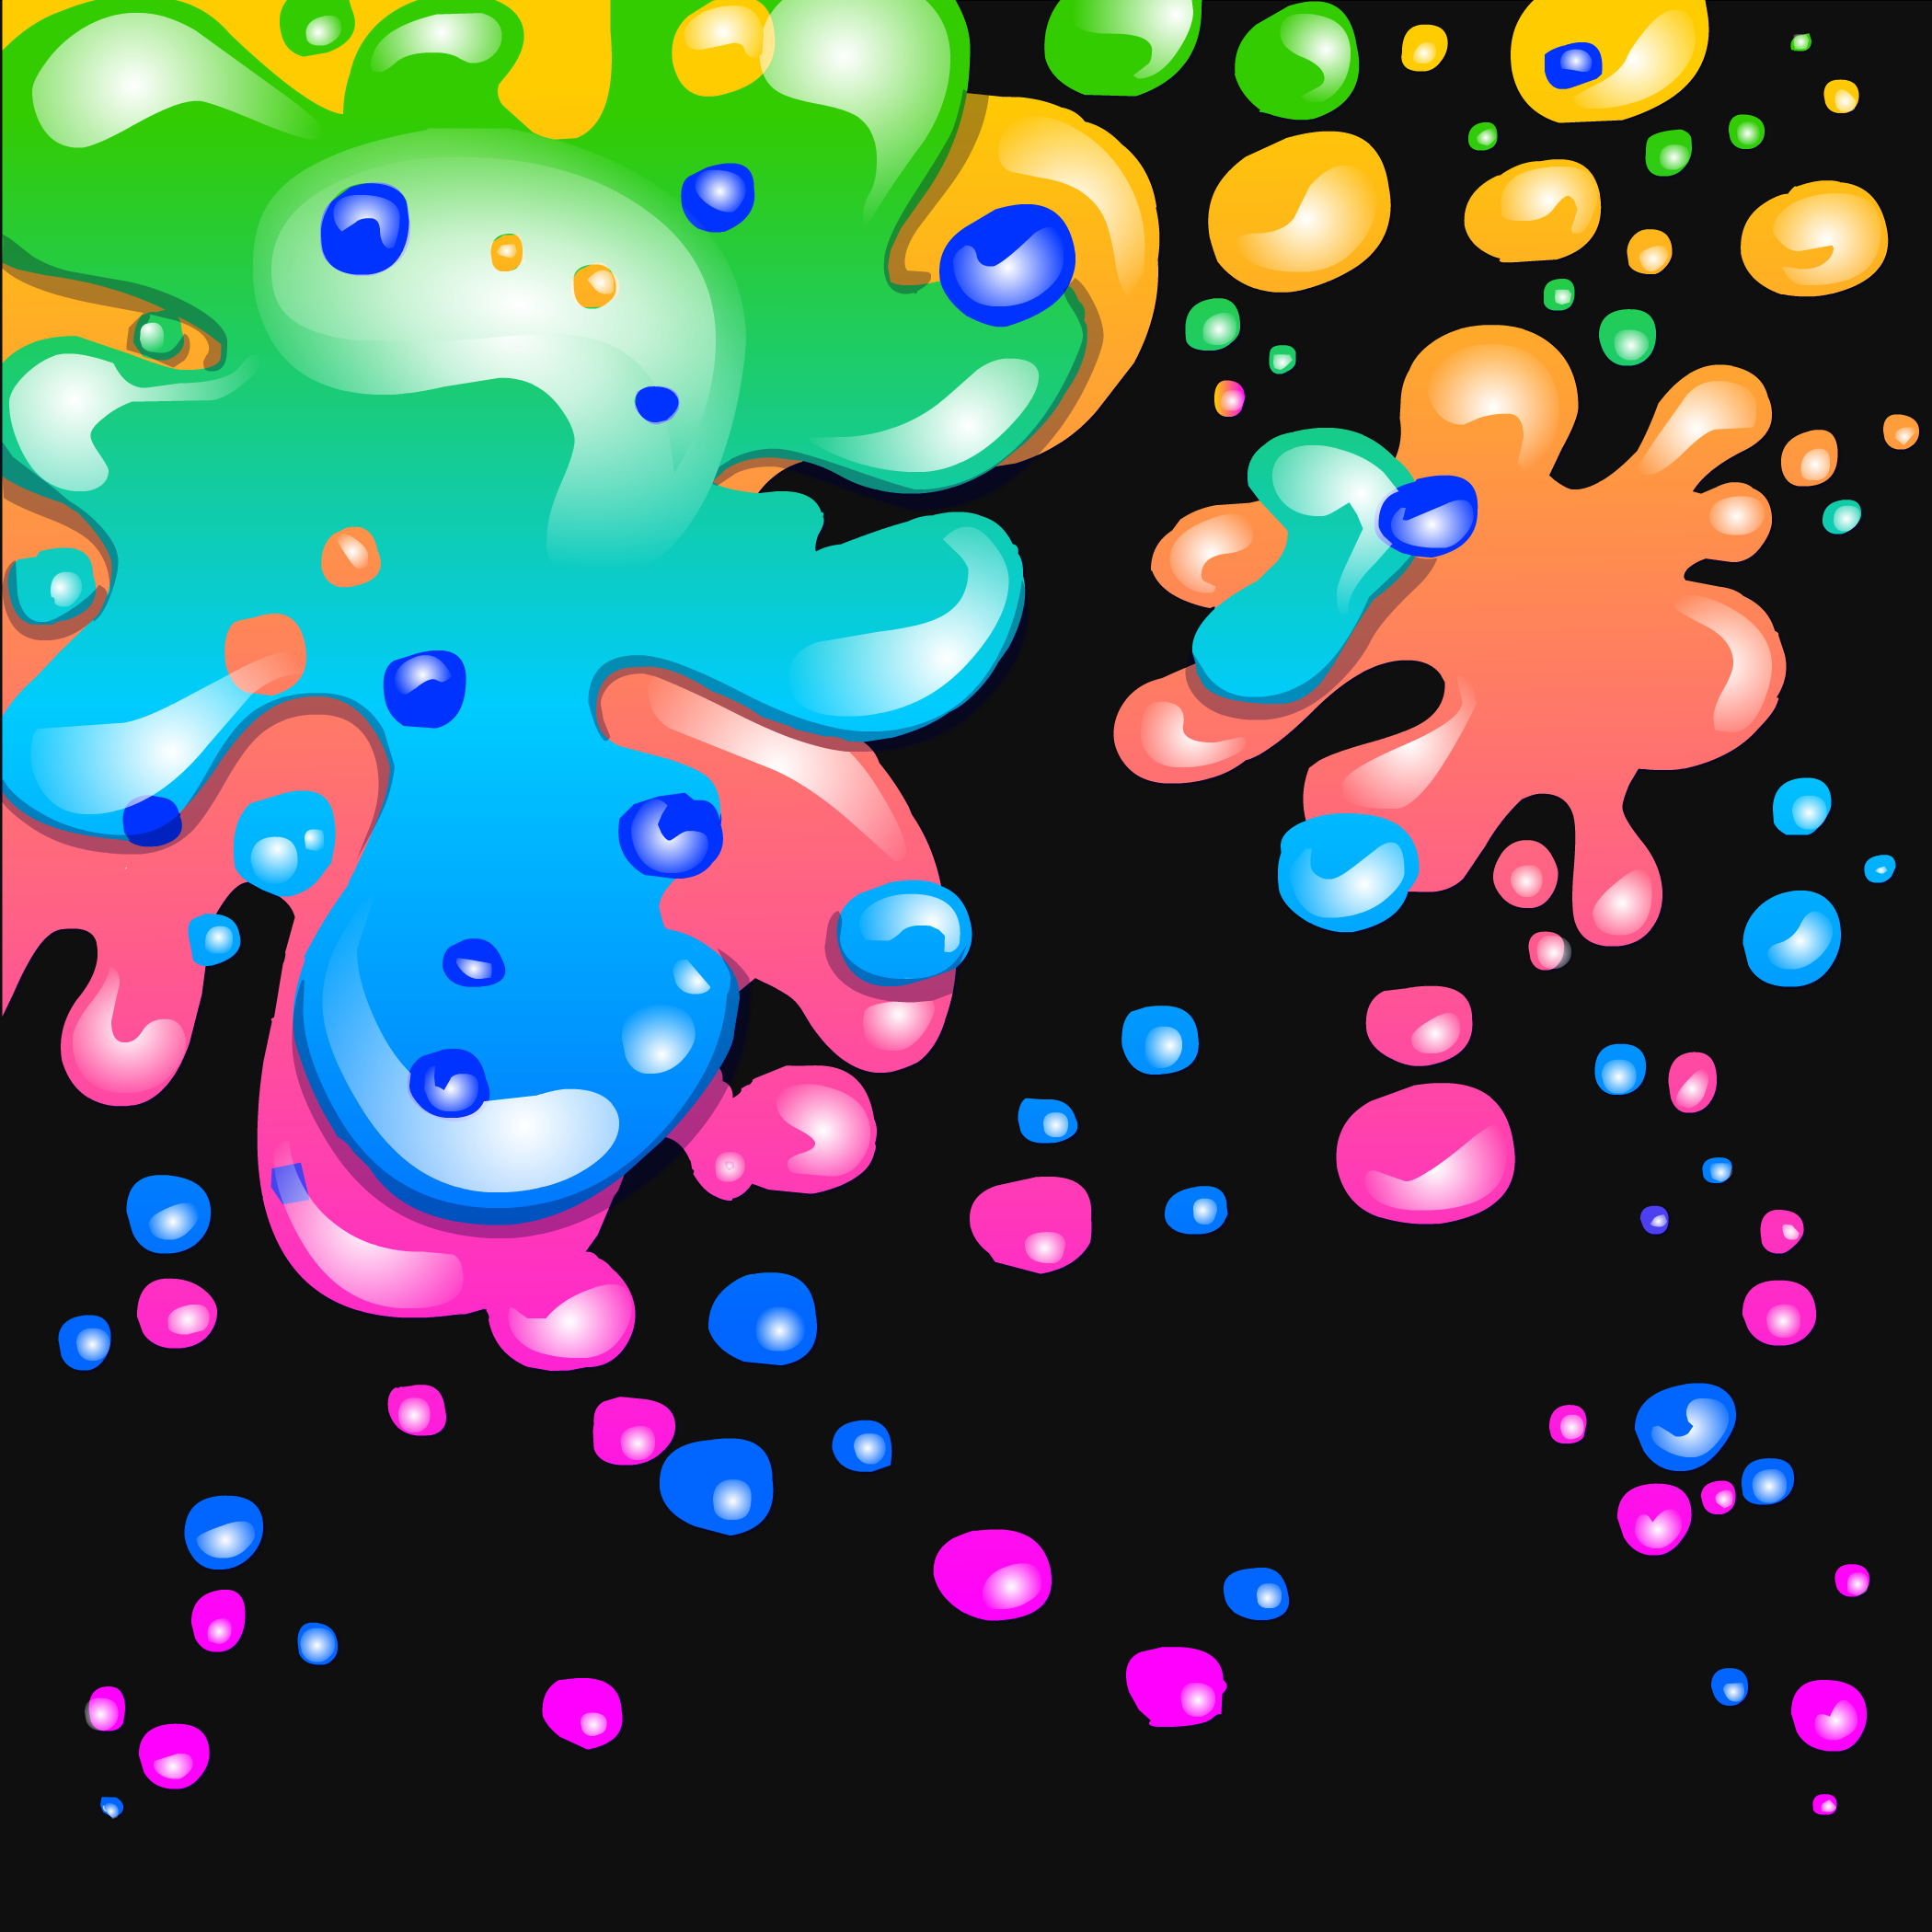 Neon Paint Splatter Background | Club Penguin Wiki | FANDOM powered ...